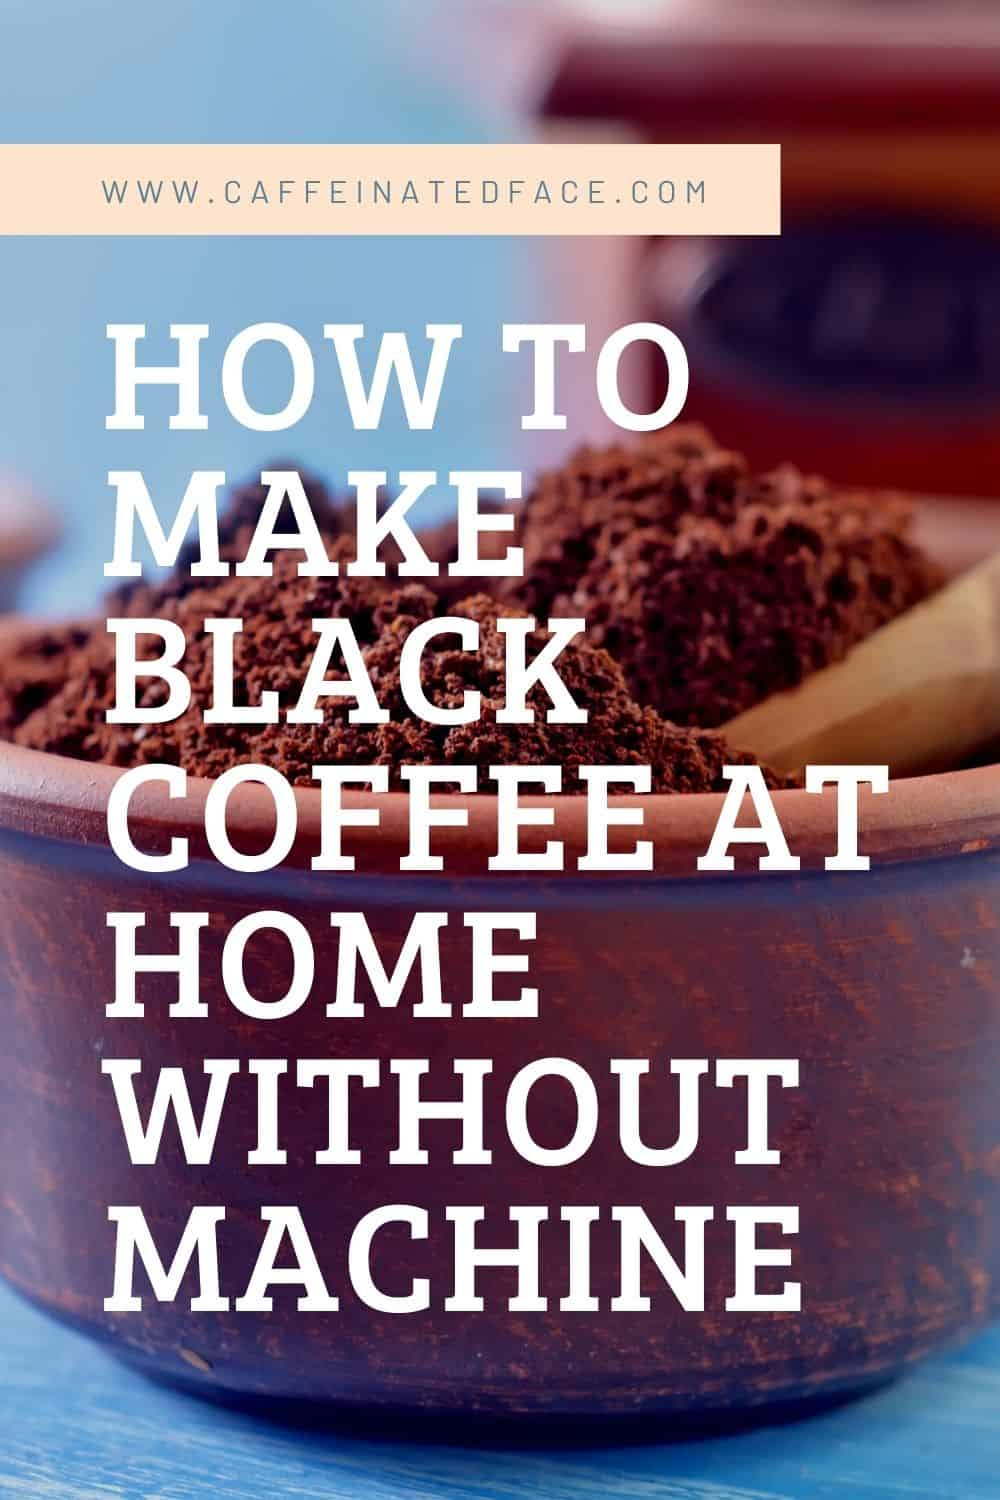 How to Make Black Coffee at Home Without Machine (1)